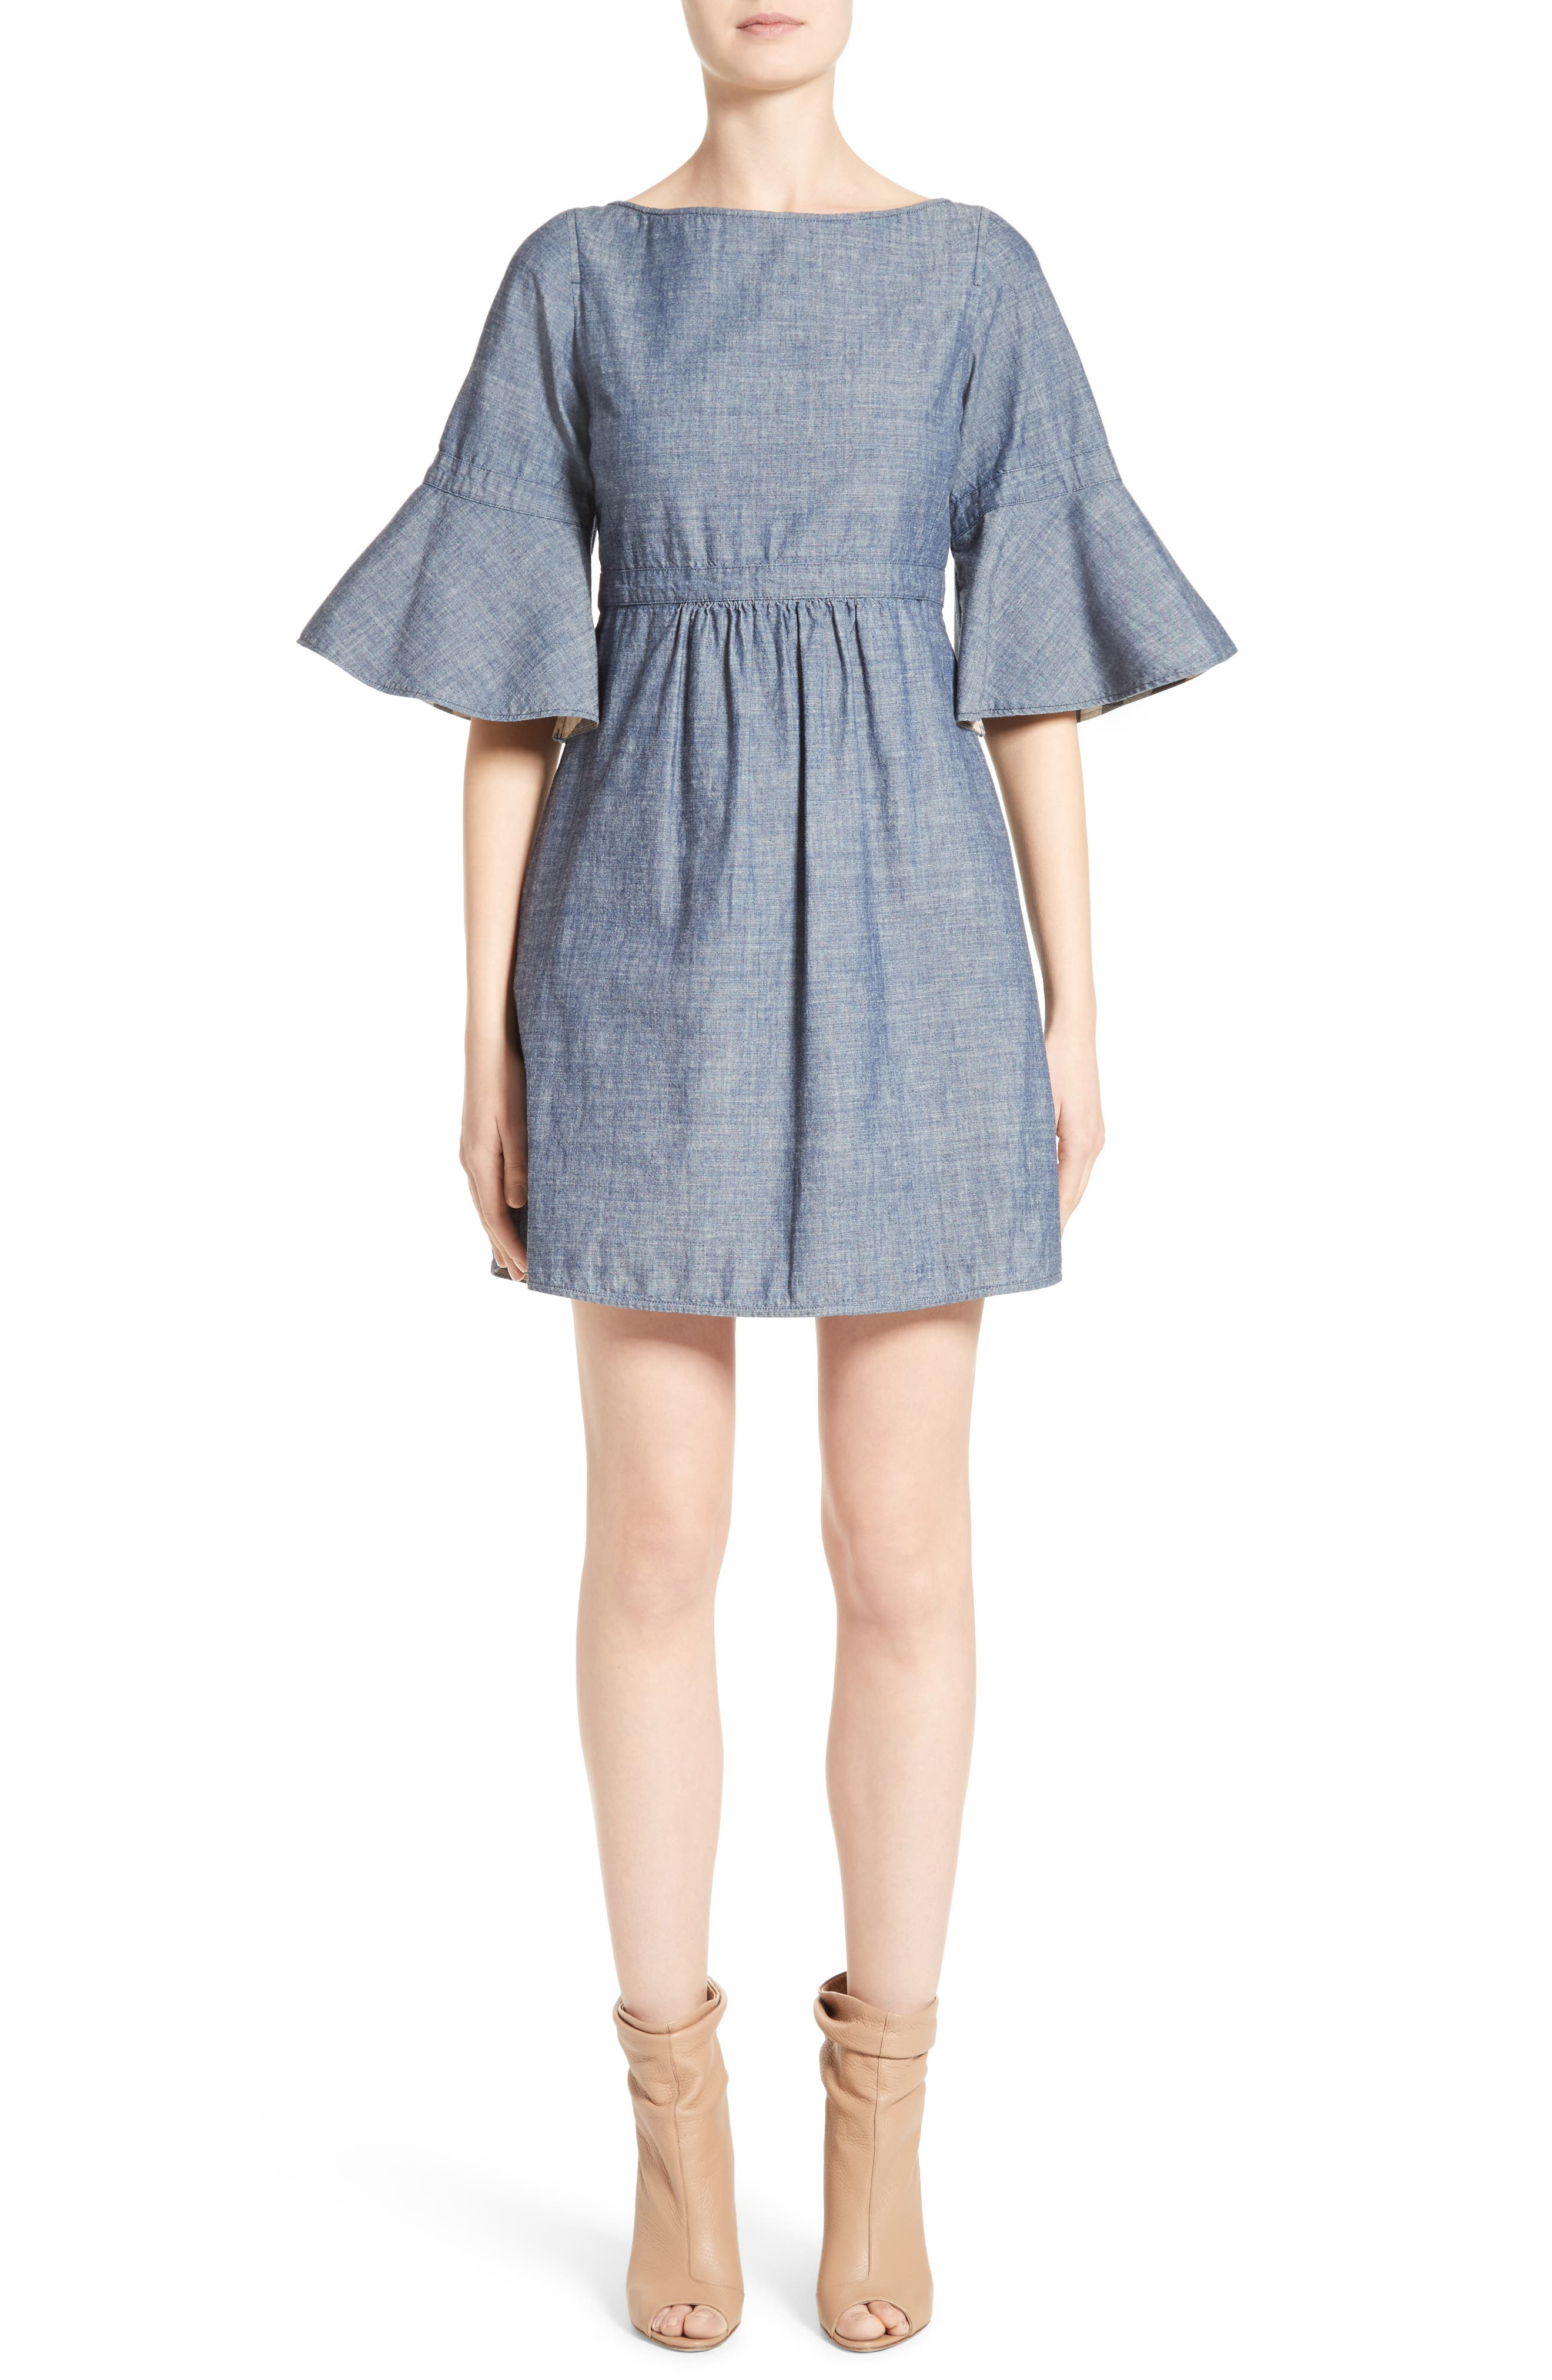 Michelle Bell Sleeve Chambray Dress,                             Main thumbnail 1, color,                             423